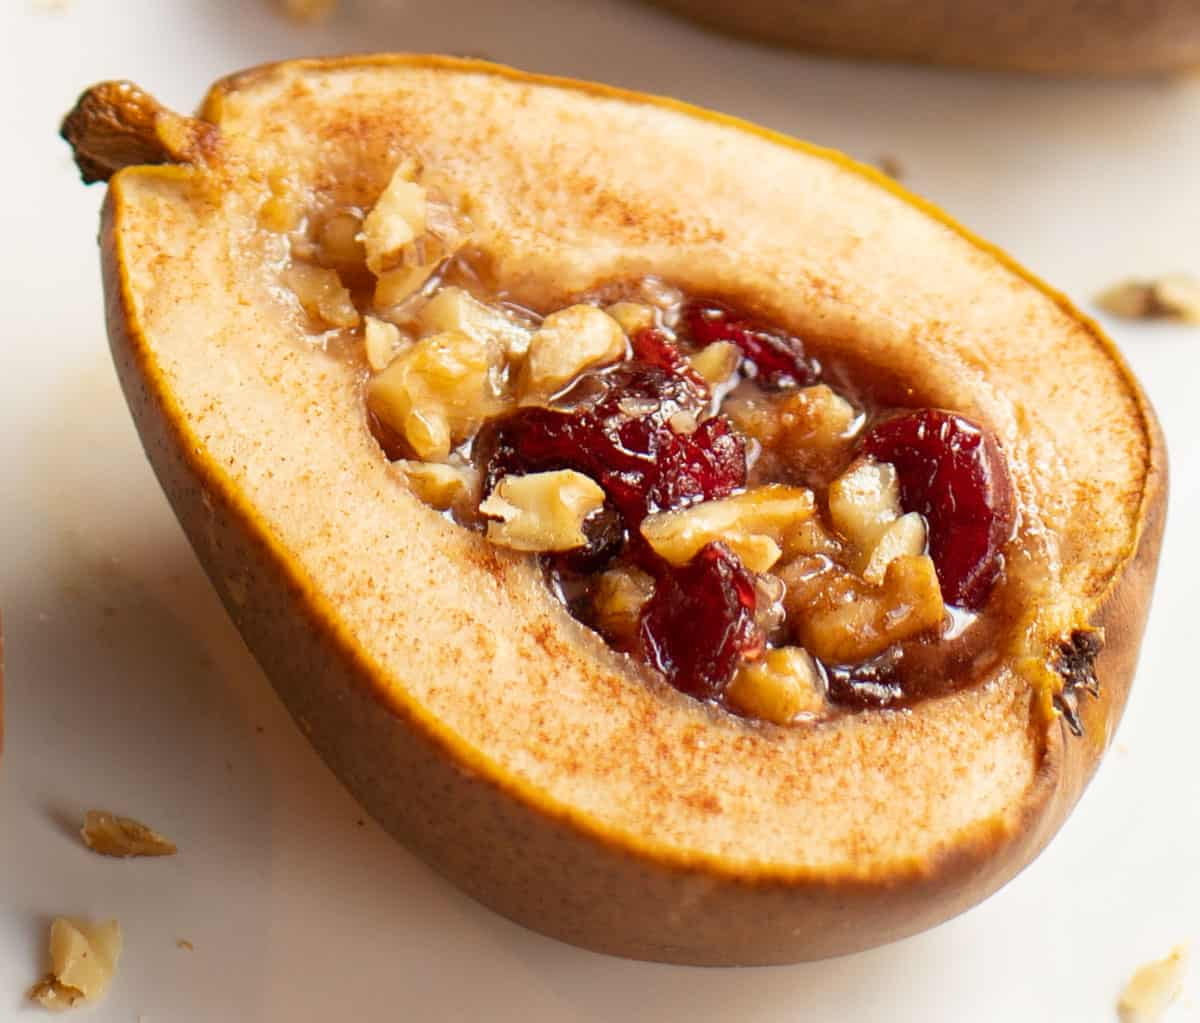 close up shot of a baked half pear stuffed with dried cranberries and chopped walnuts